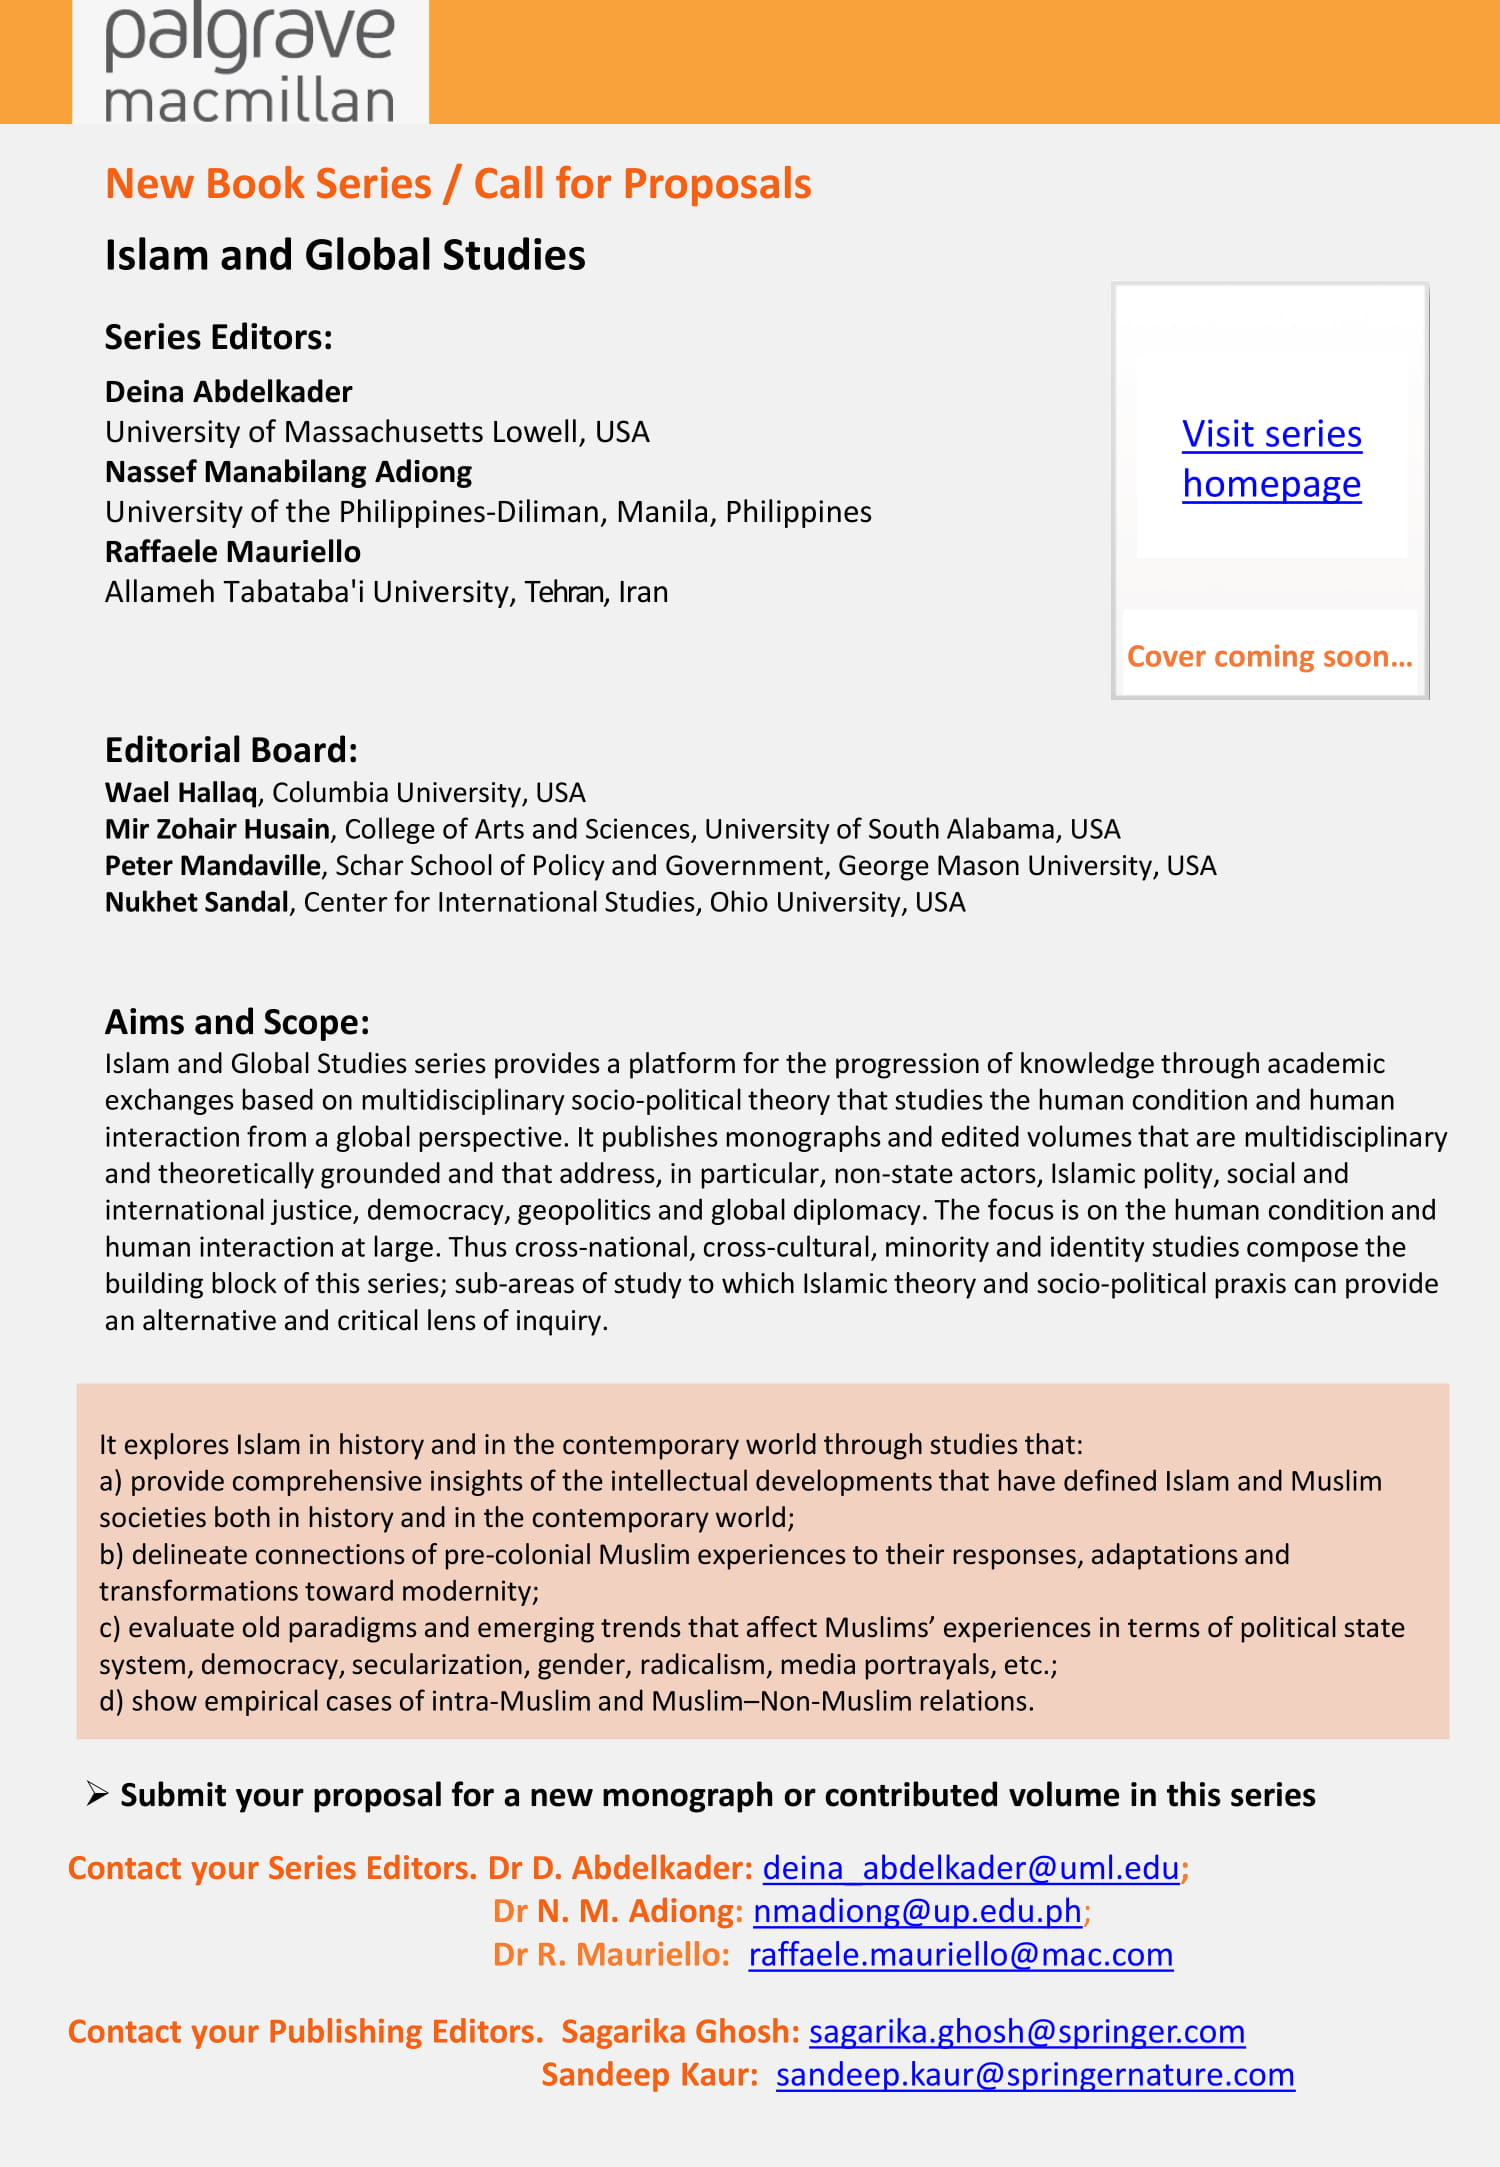 IGS Series flyer- call for papers (no cover)-1